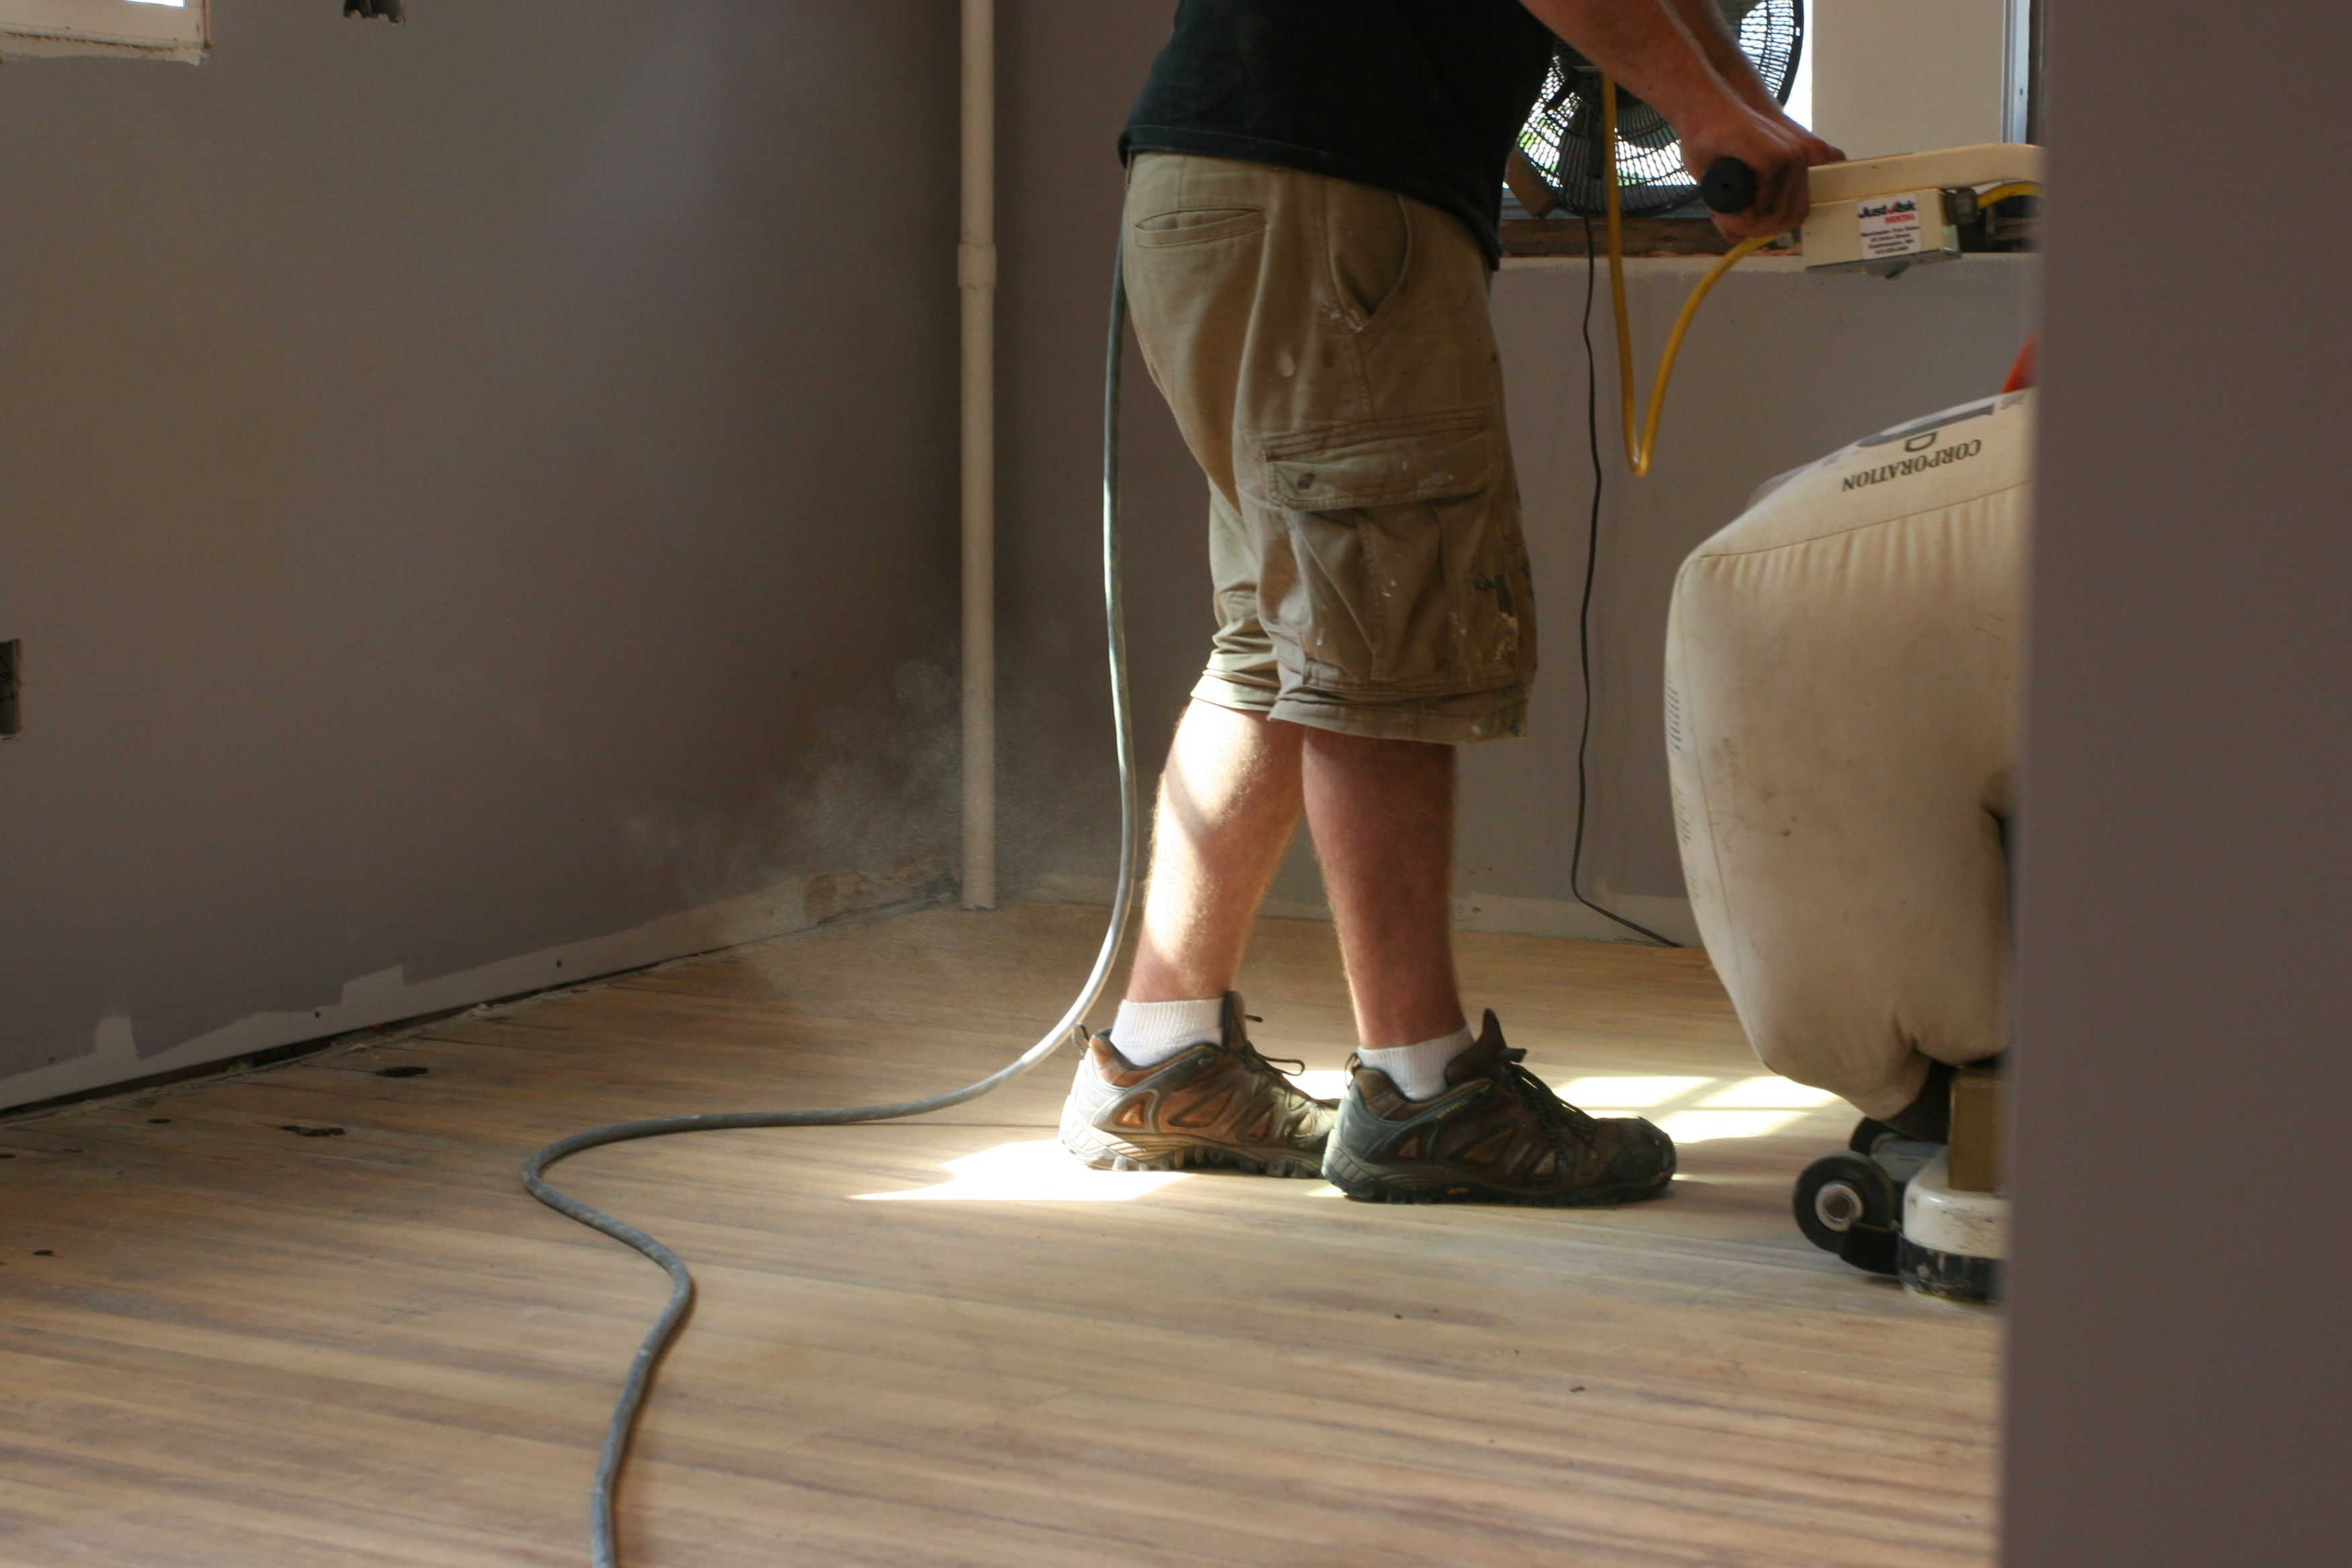 You can only see a fraction of the sawdust that was swirling around the room.